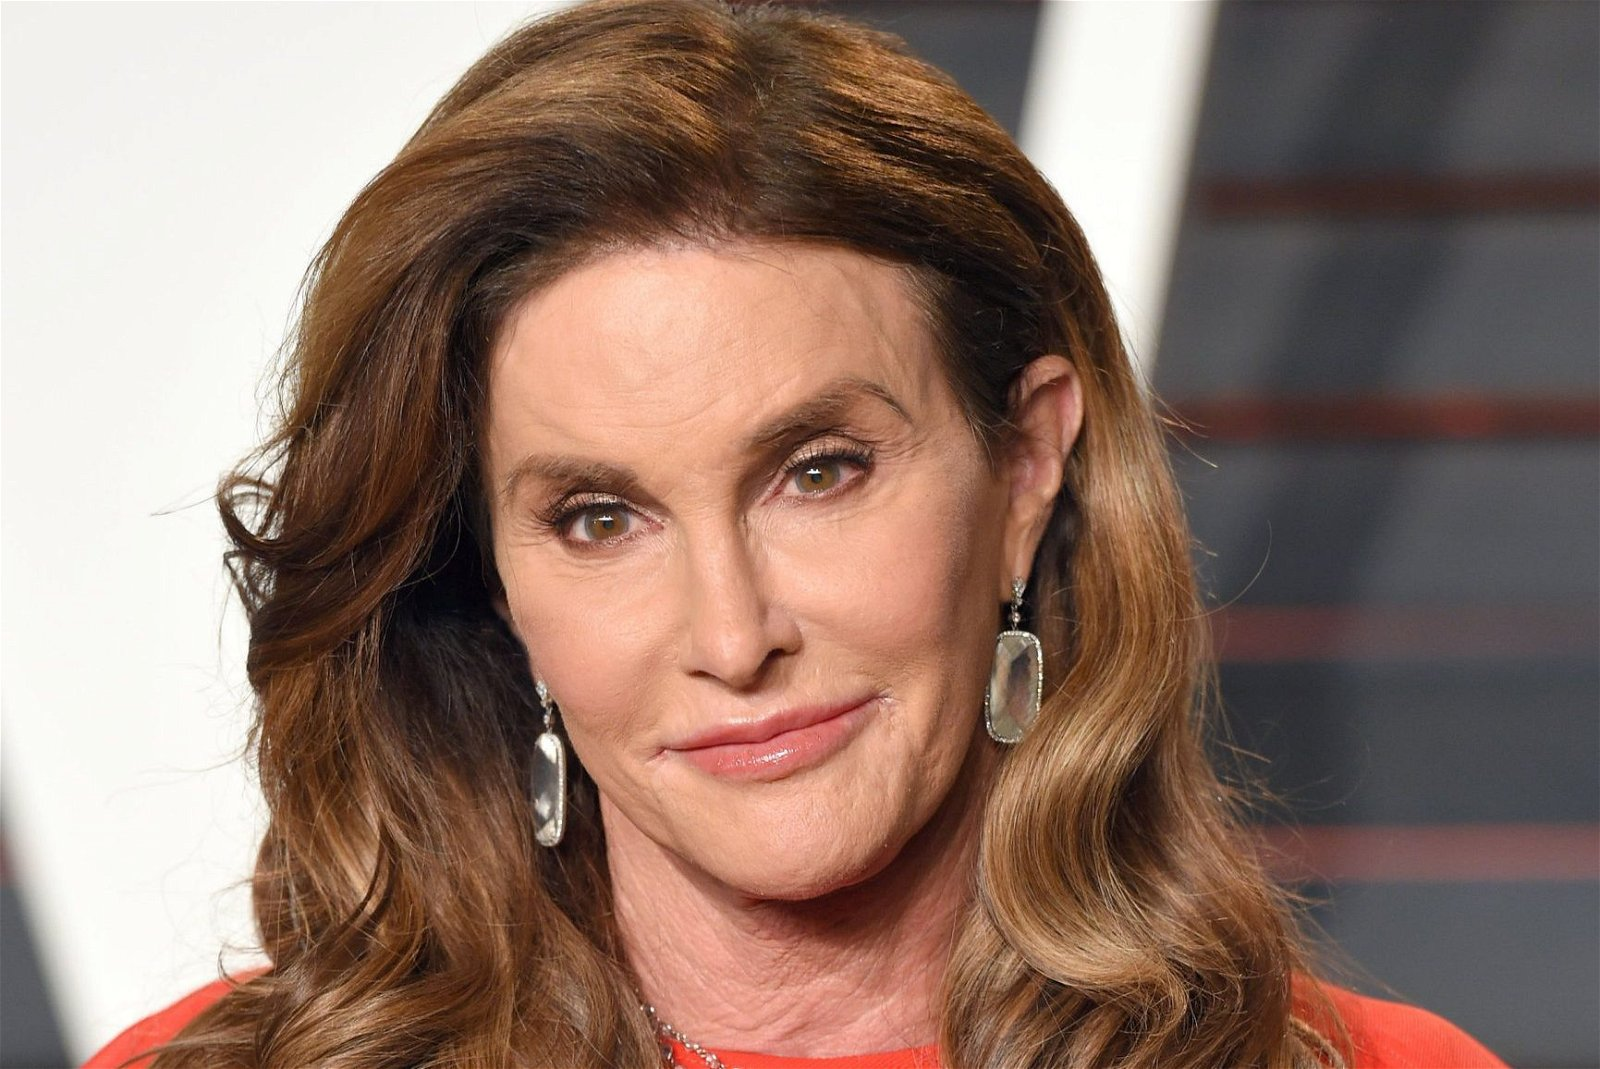 Where Did Caitlyn Jenner Go to College?